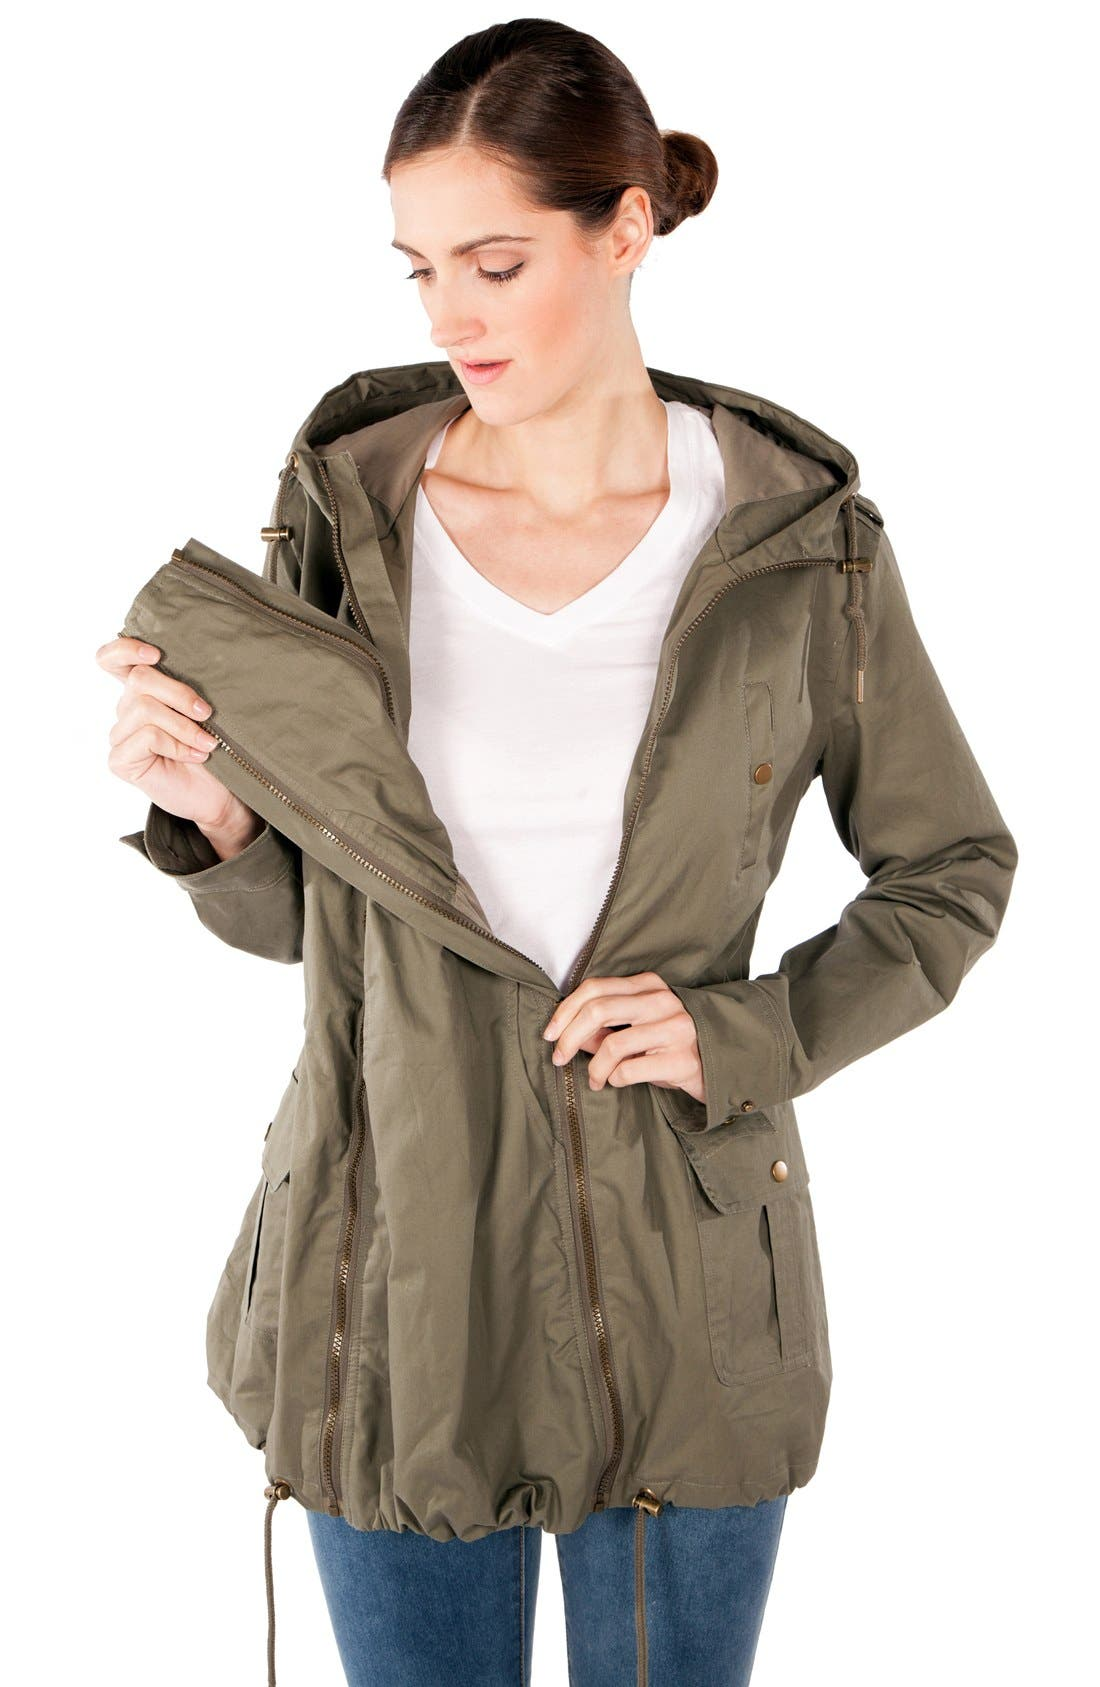 Convertible Military 3-in-1 Maternity/Nursing Jacket,                             Alternate thumbnail 9, color,                             KHAKI GREEN